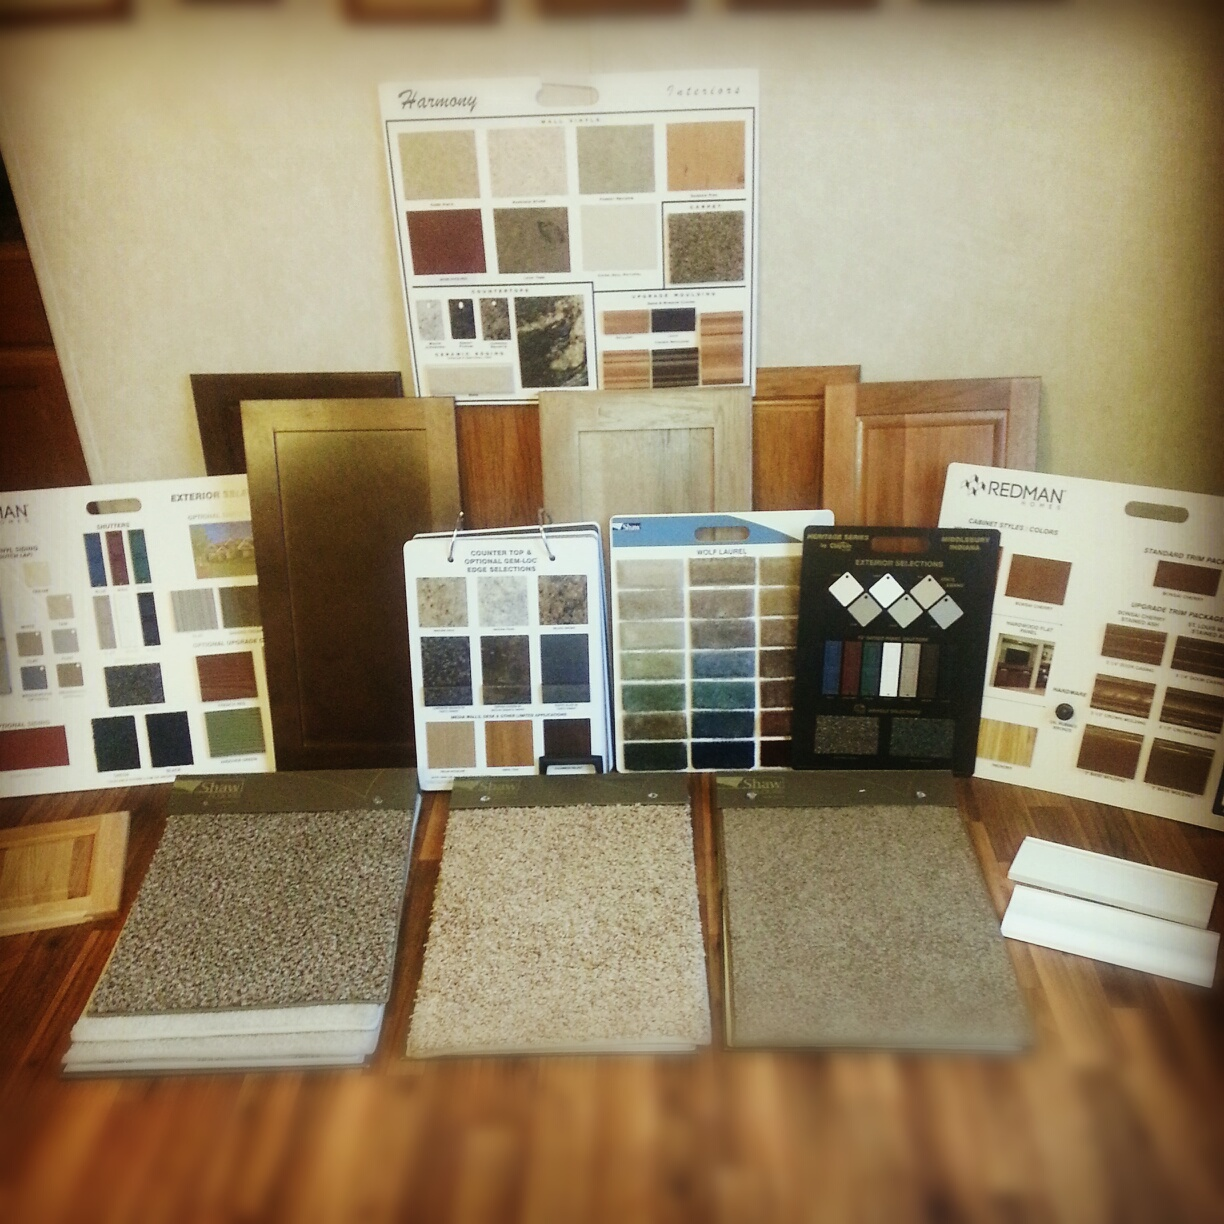 benefits of modular homes from sherlock homes of indiana inc huge variety of colors and decors to choose from makes your home exactly the way you want it